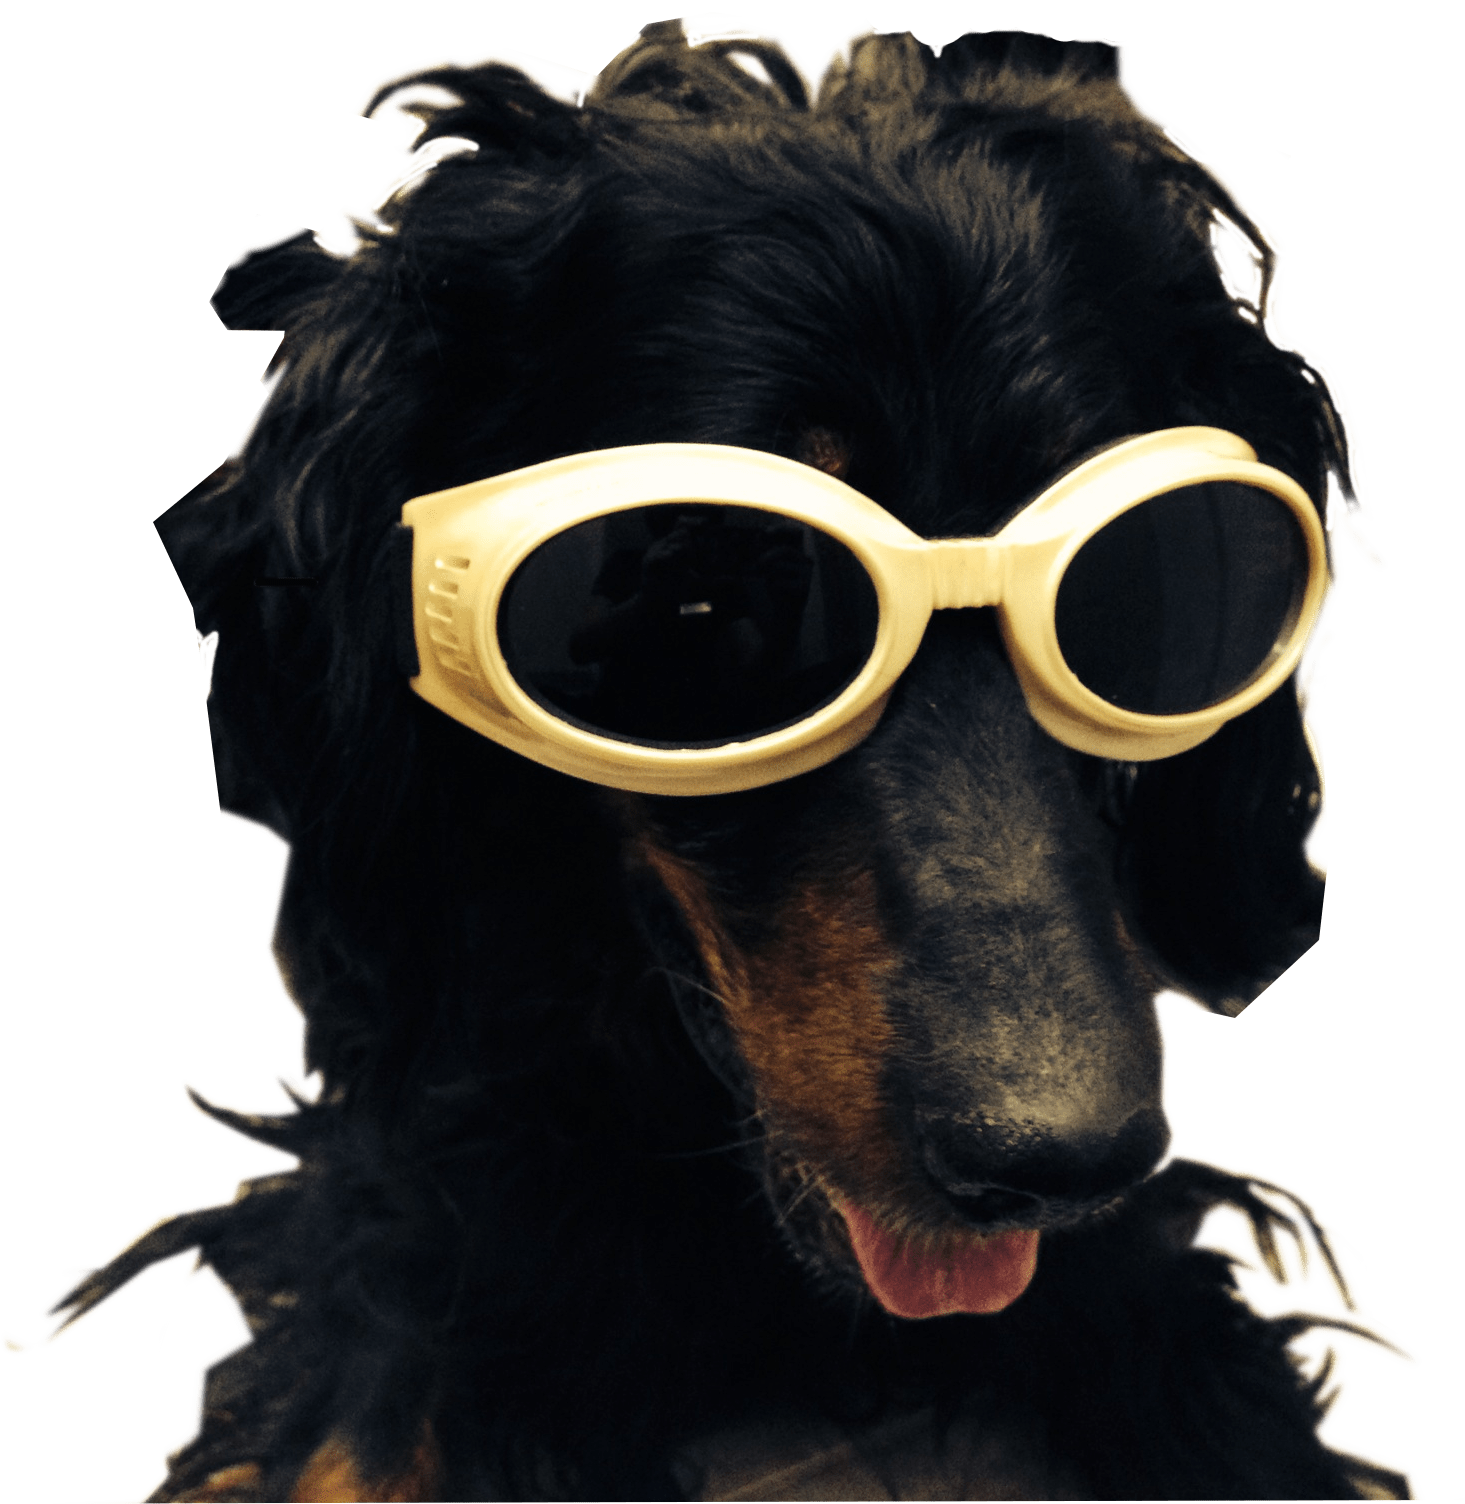 Black dog with tongue sticking out with yellow goggles.